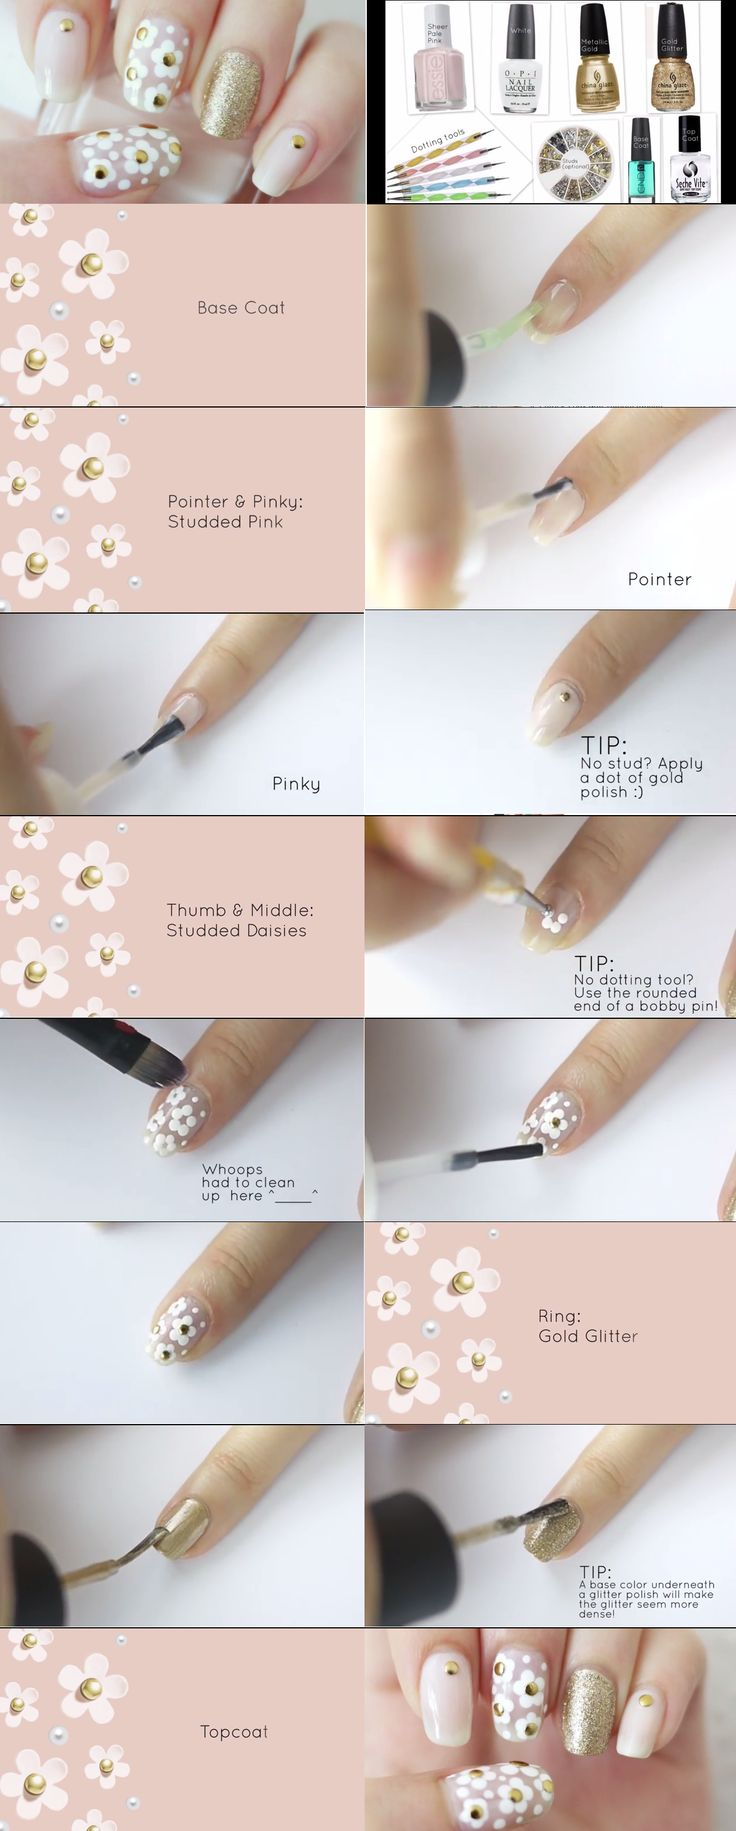 Marc Jacobs Nail Tutorial http://gtl.clothing/a_search.php#/post/Marc%20Jacobs/true @gtl_clothing #getthelook